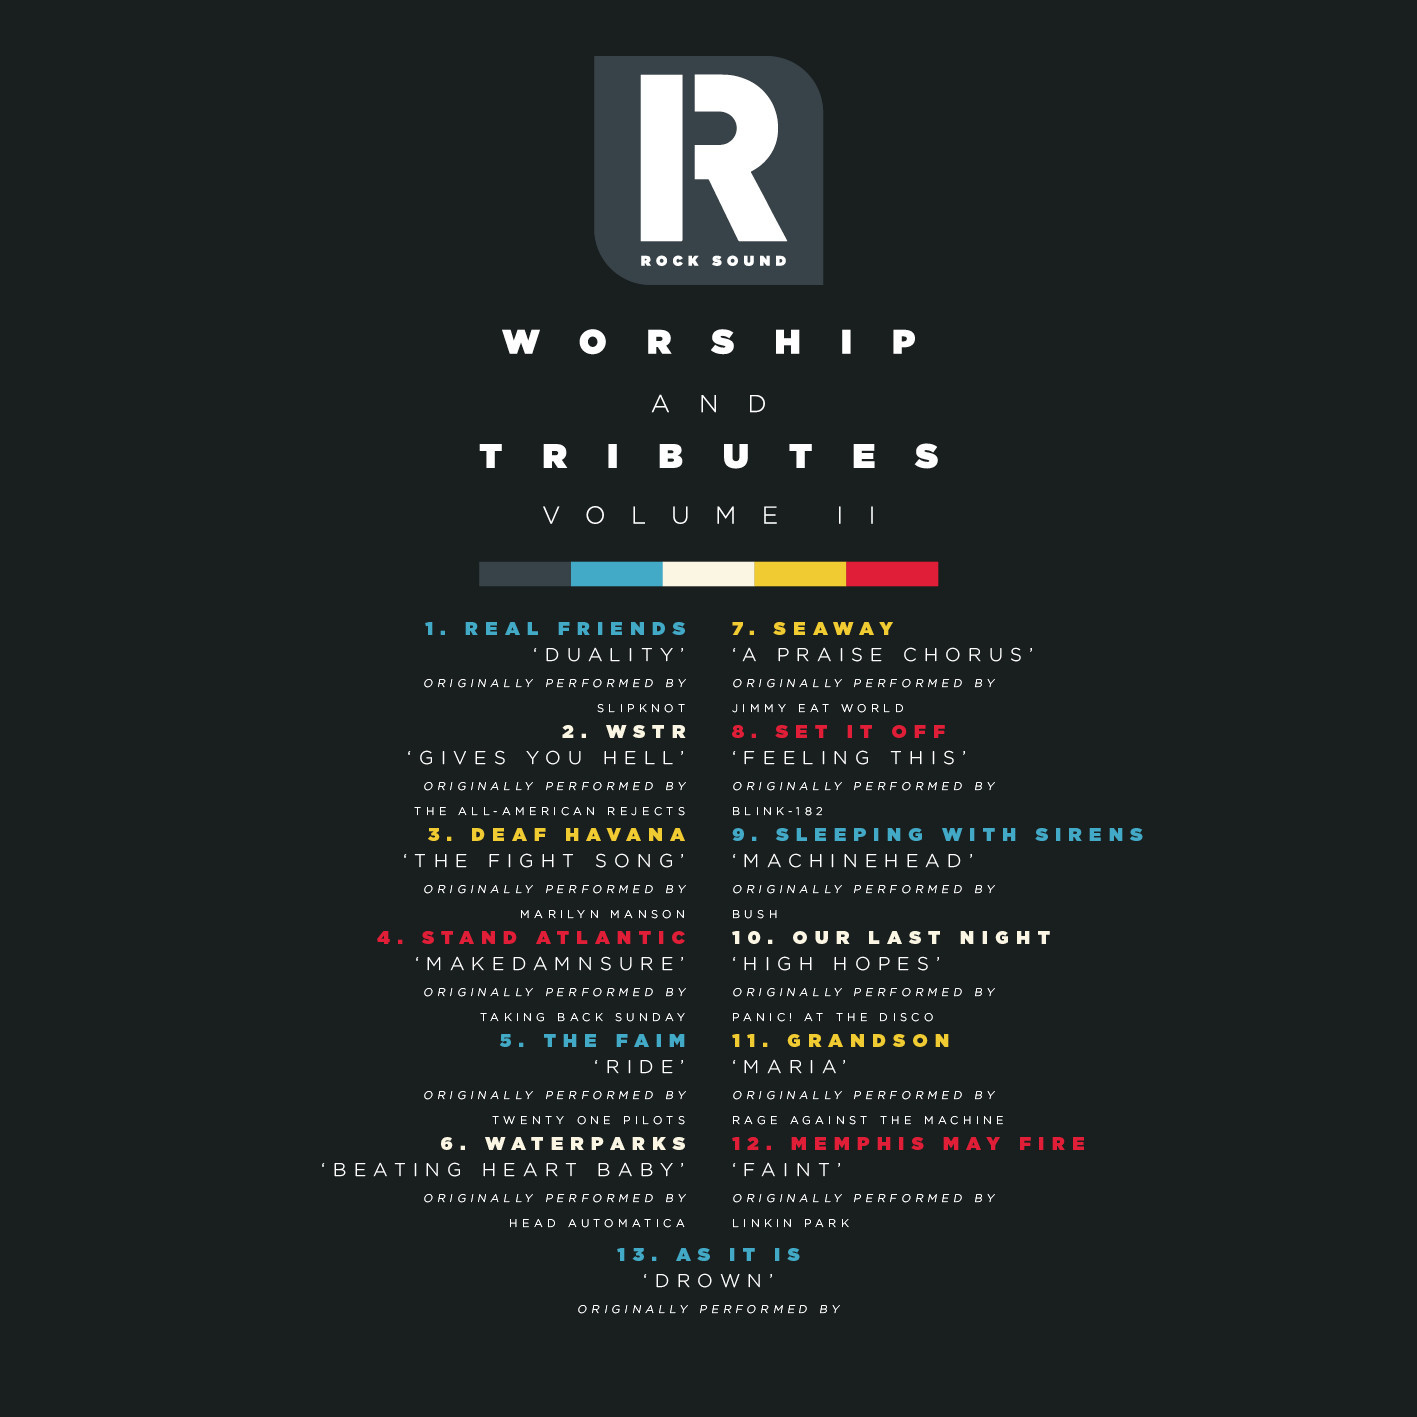 Pre-Order The Rock Sound 250 'Worship And Tributes' Covers Album NOW